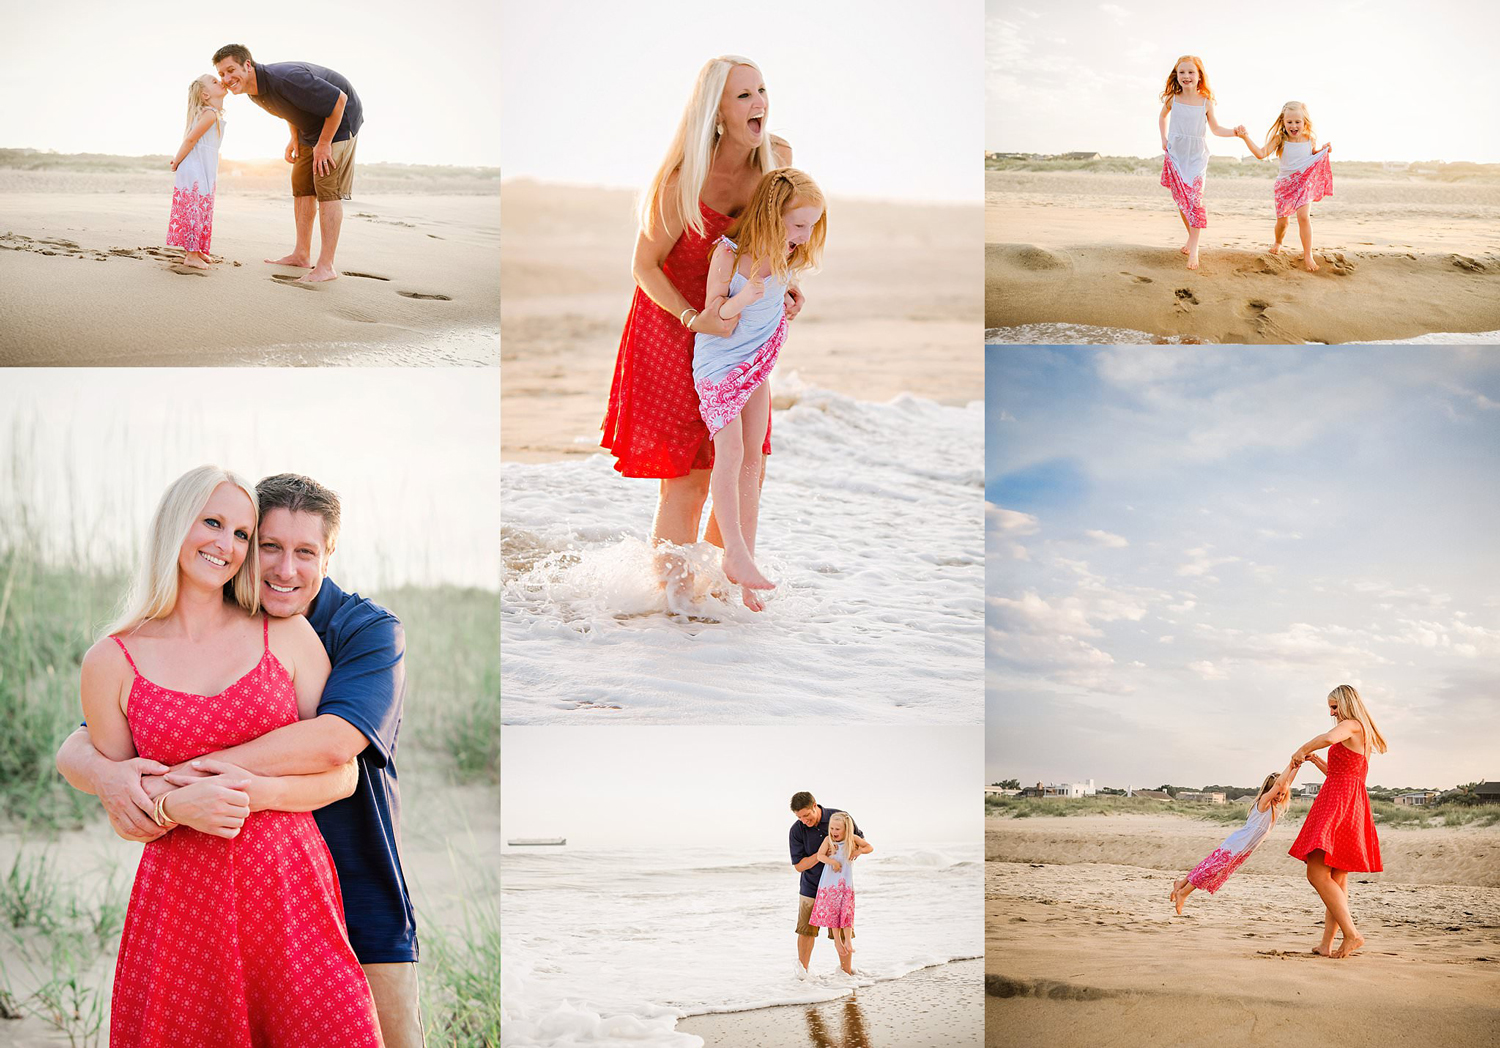 sunset-family-beach-pictures-melissa-bliss-photography-virginia-beach-photographer.jpg